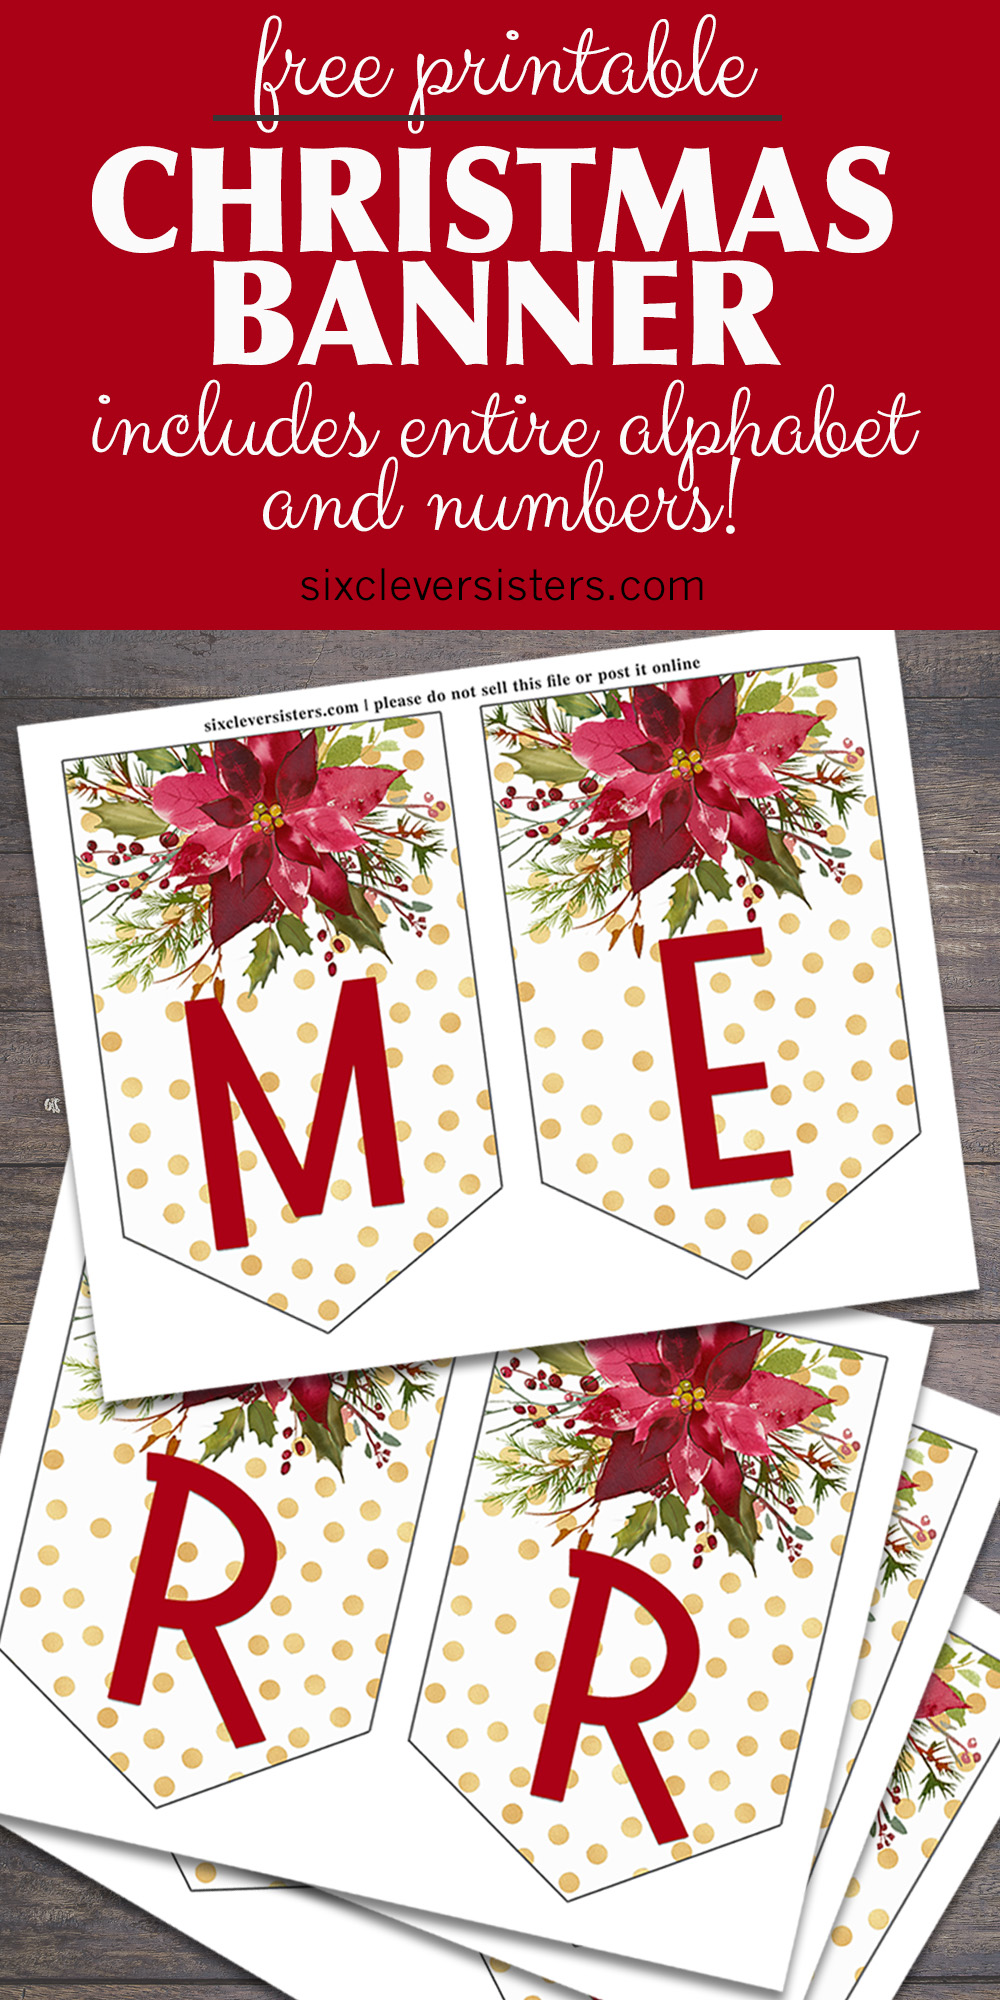 graphic regarding Merry Christmas Letters Printable identify Printable Xmas Banner - 6 Good Sisters